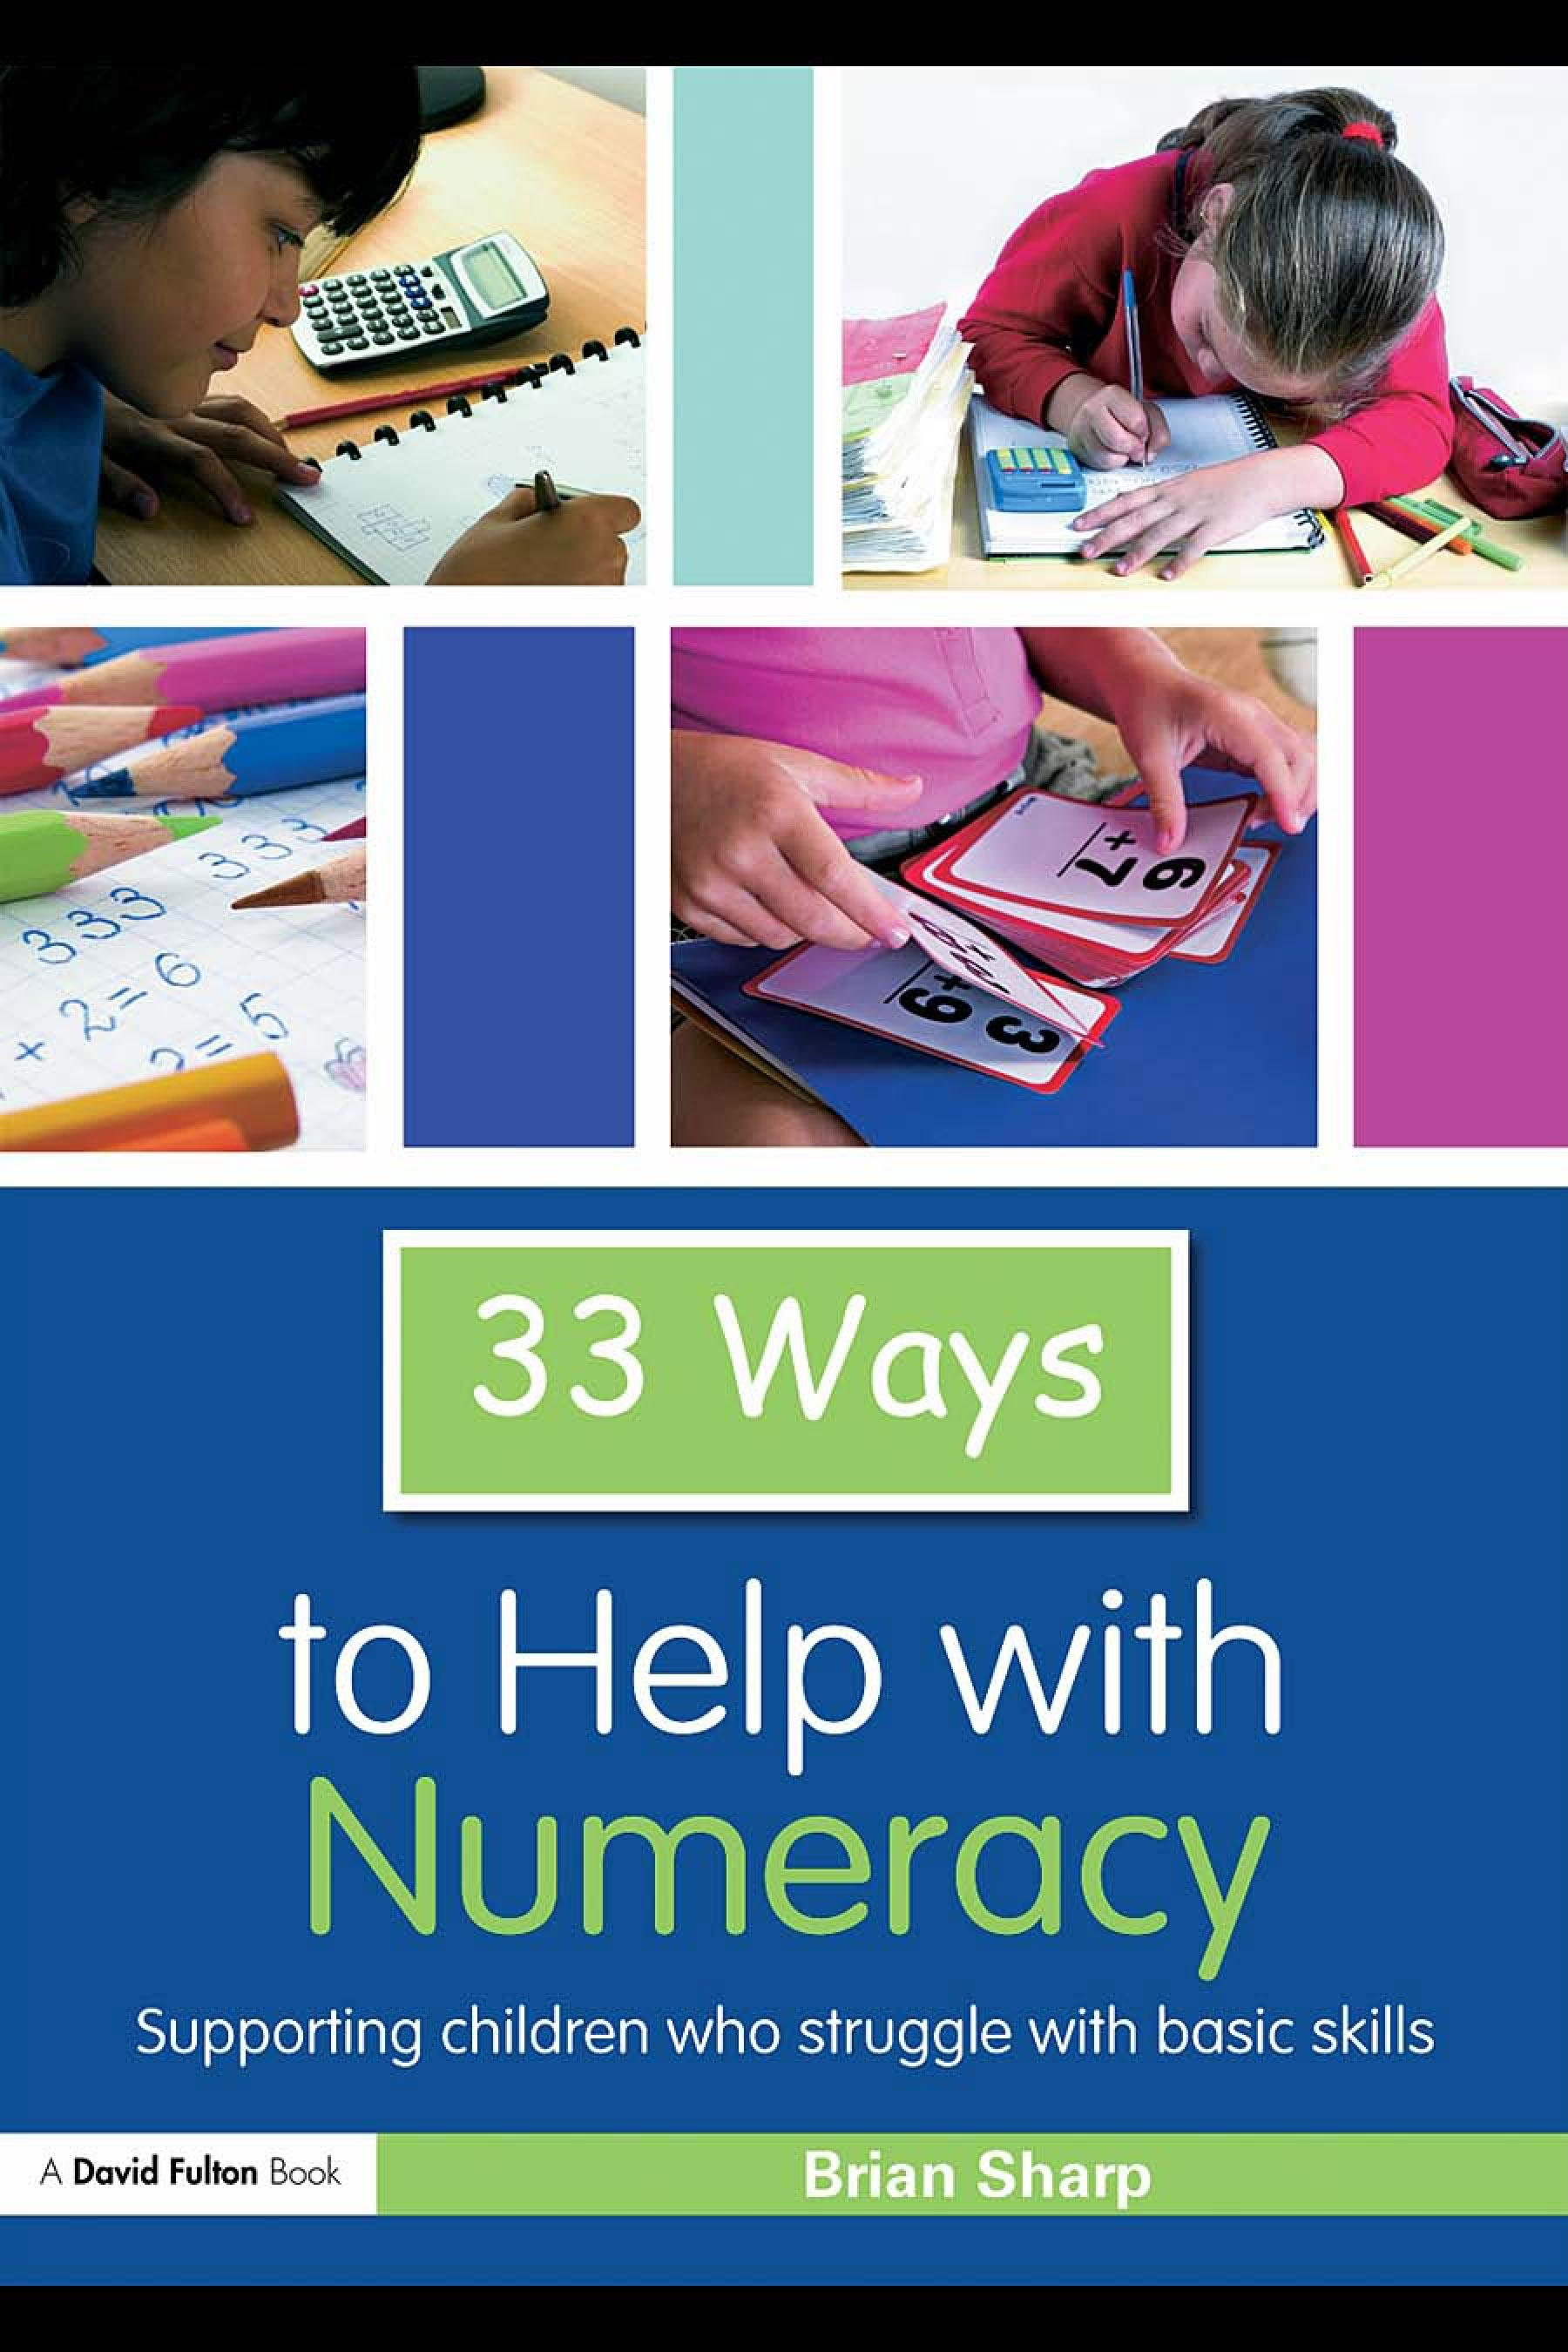 Thirty Three Ways to Help with Numeracy: Supporting Children who Struggle with Basic Skills